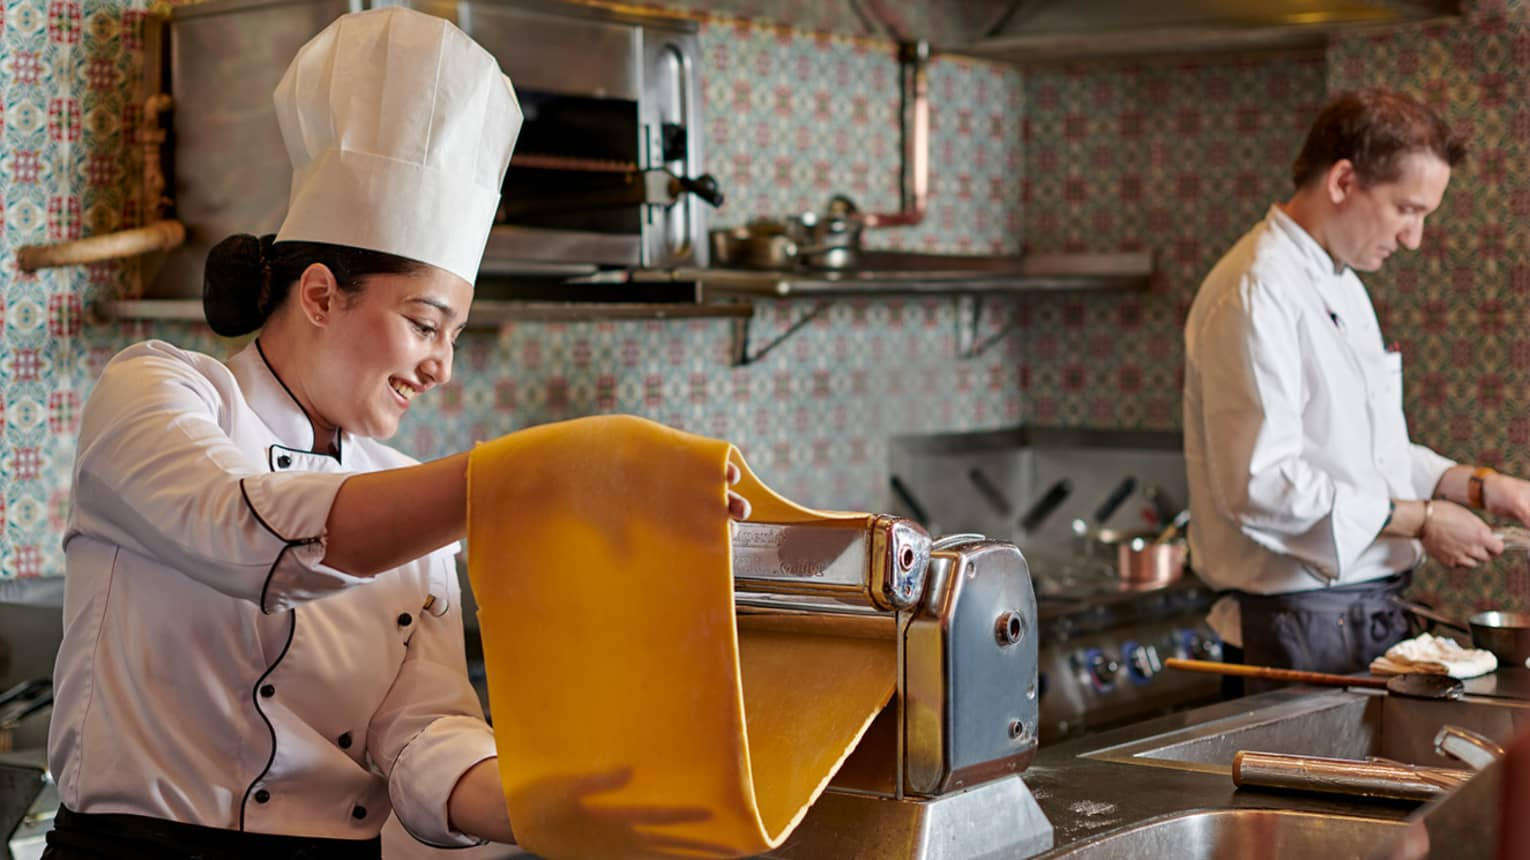 A woman wearing tall white chef's hat makes pasta, feeding dough through a rolling machine